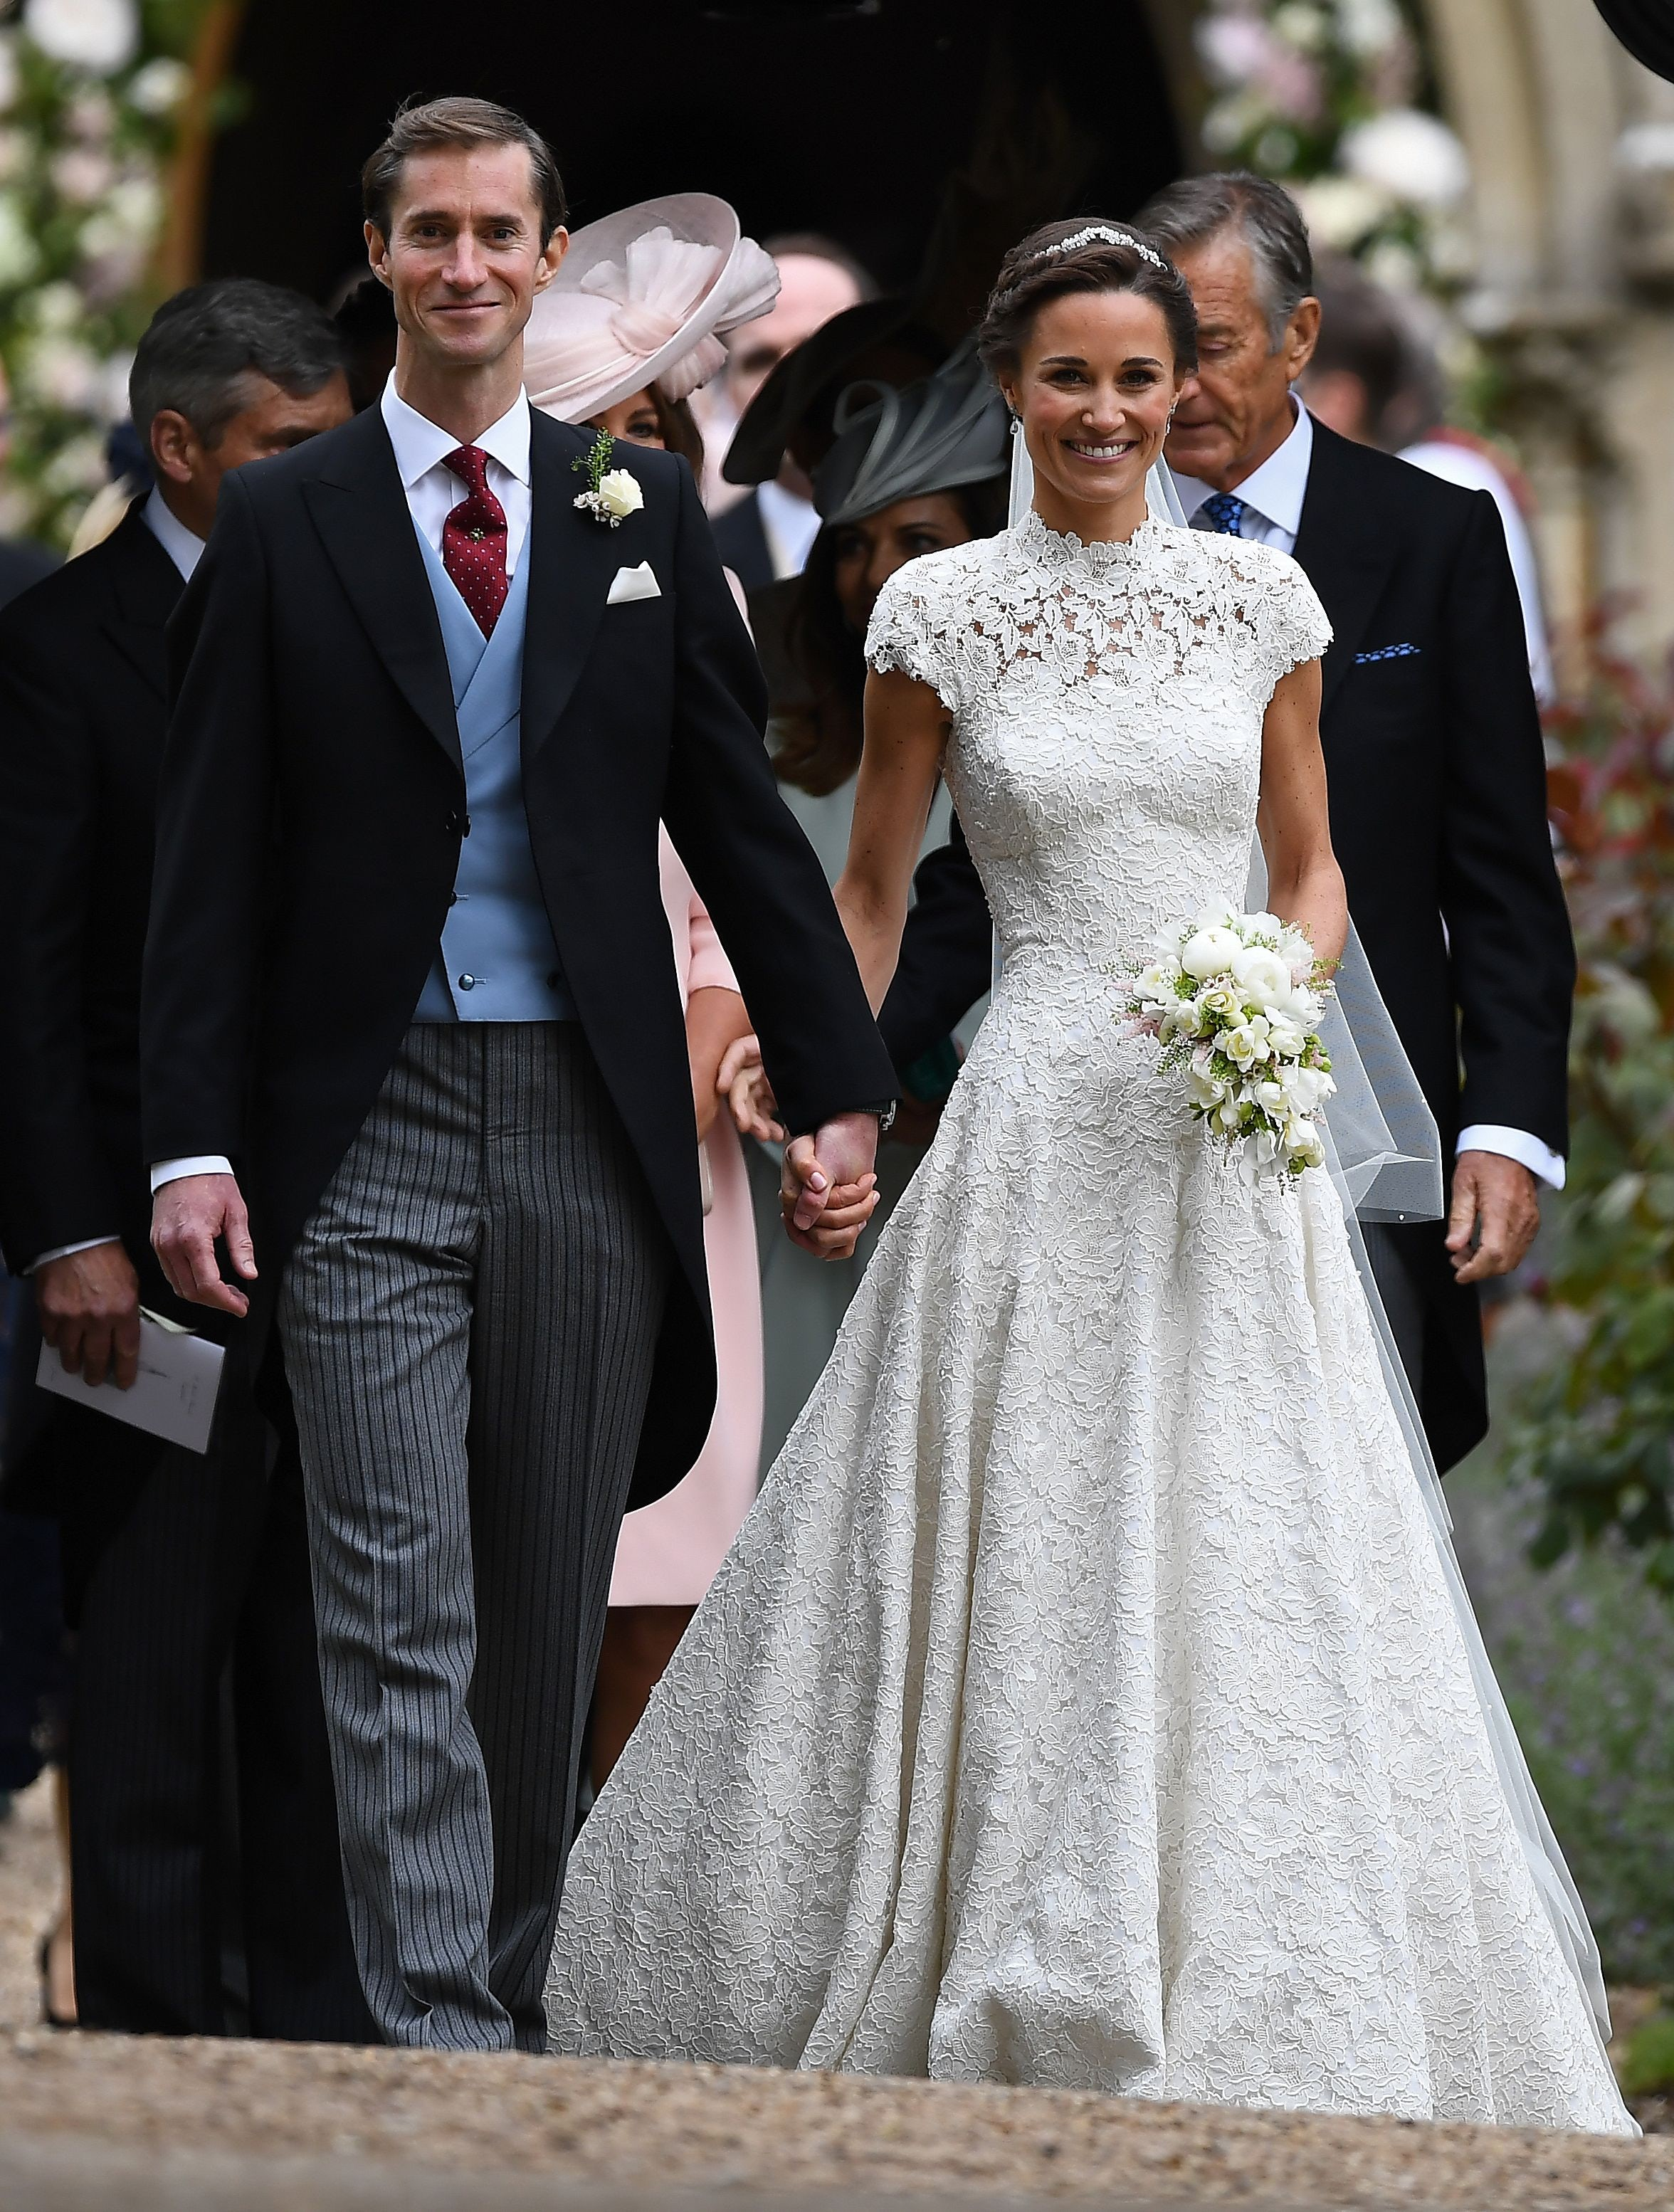 Pippa Middleton with her new husband James Matthews in her Giles Deacon Couture wedding gown | Source: Getty Images